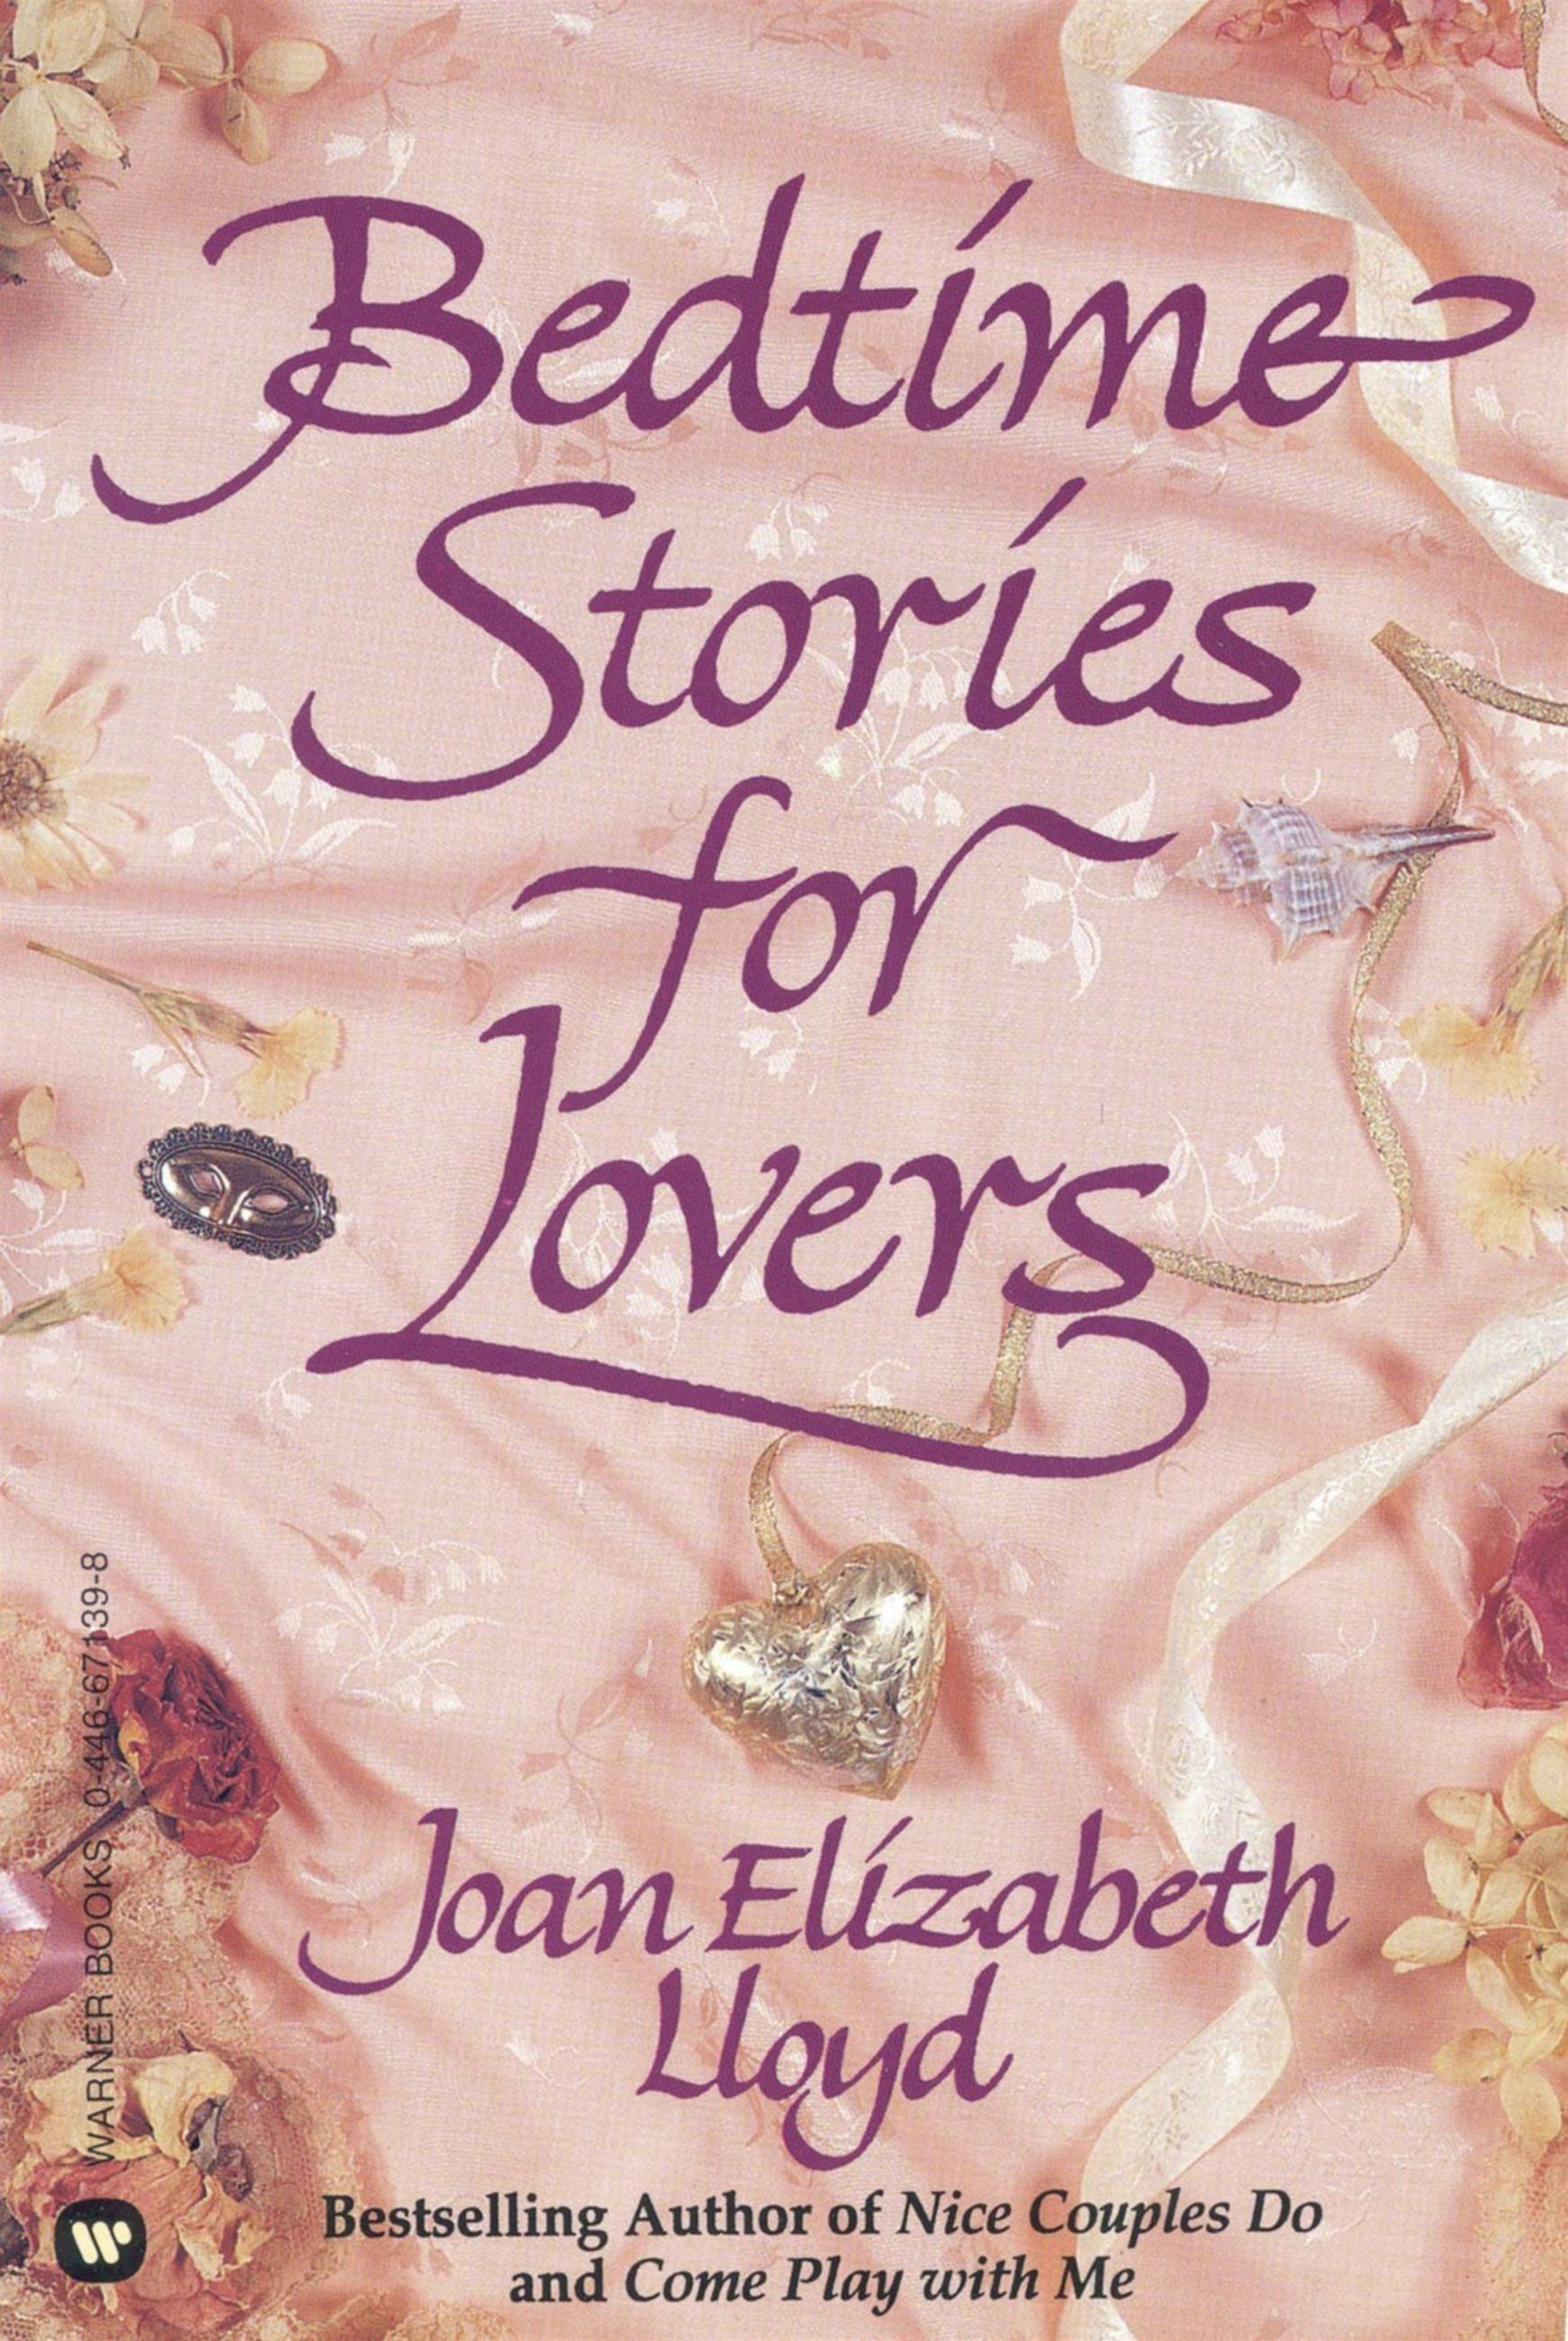 Bedtime Stories for Lovers